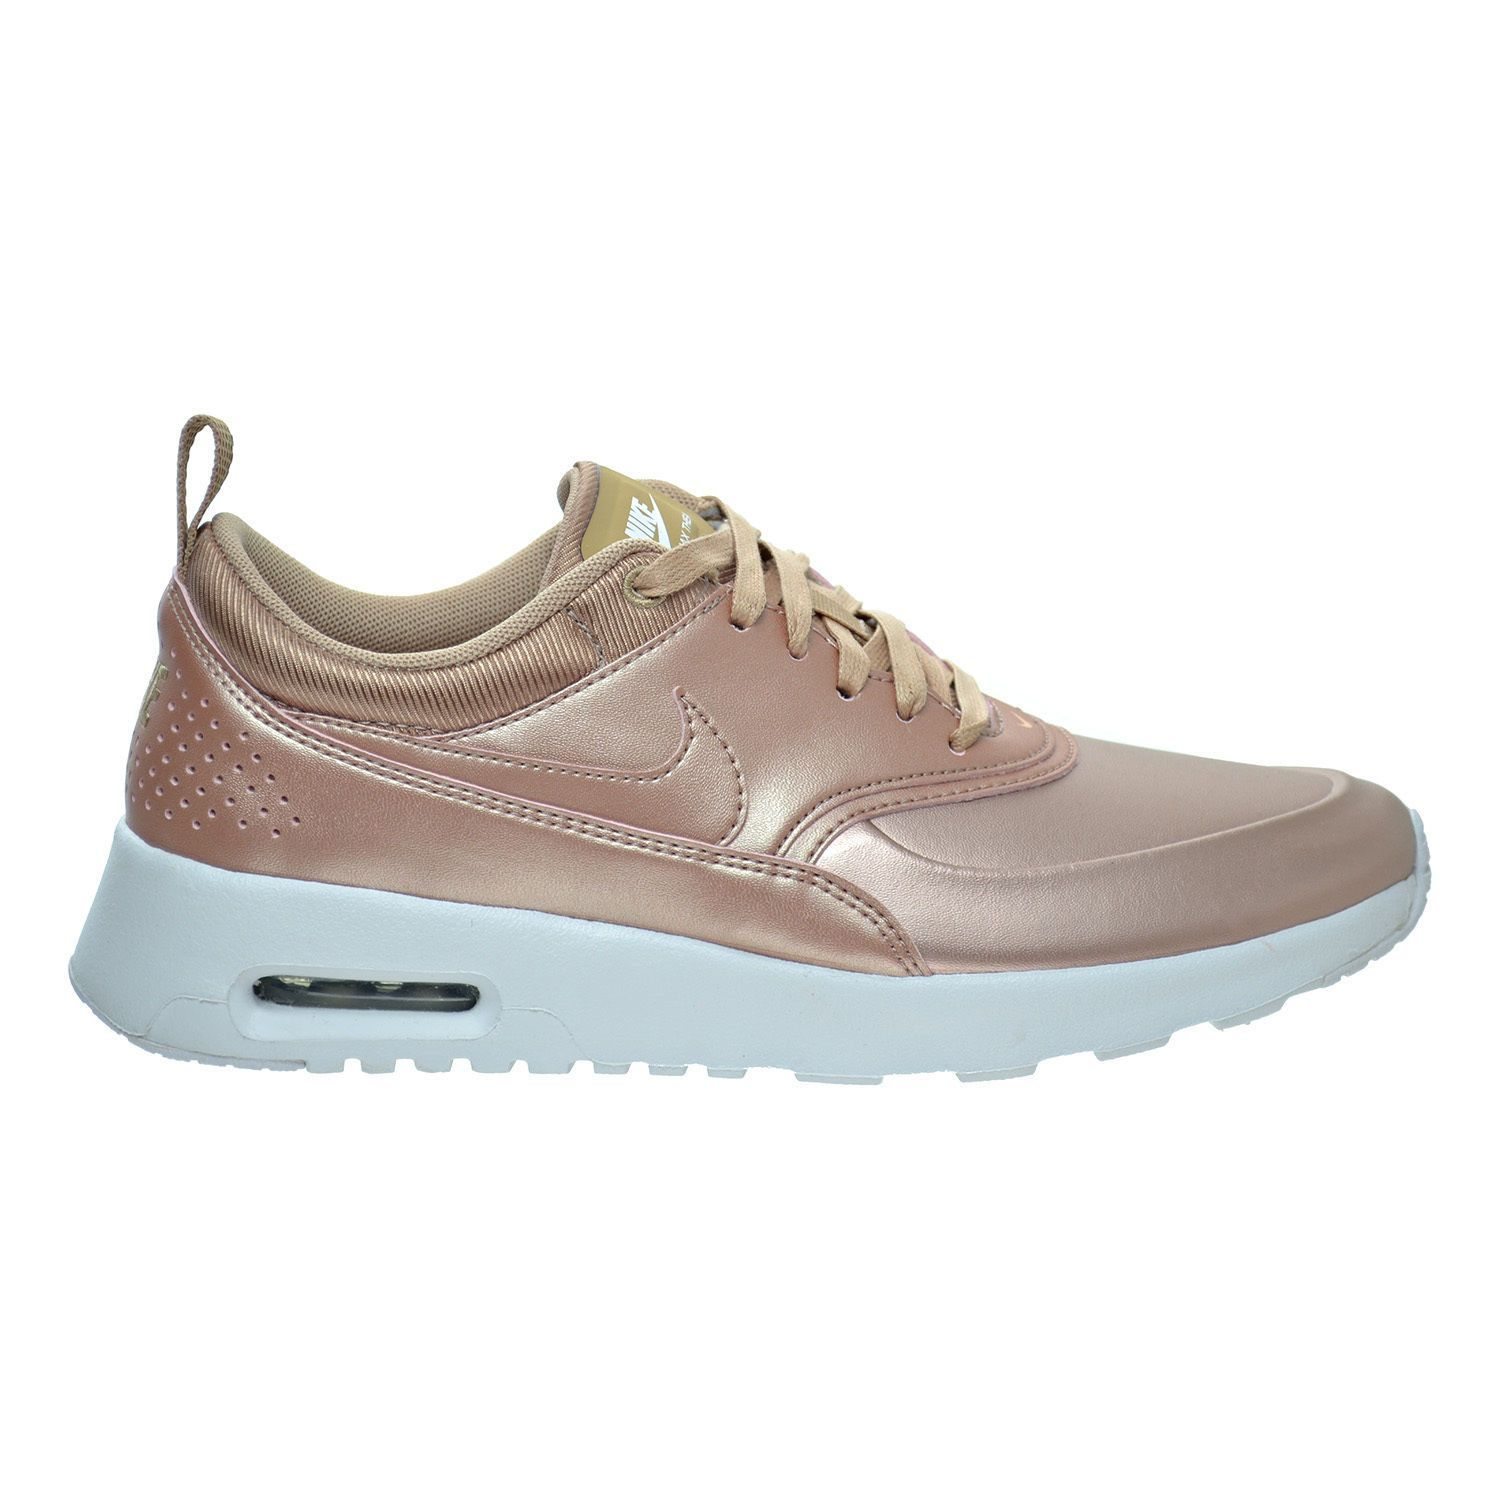 Details about Nike Air Max Thea SE Metallic Rose Gold